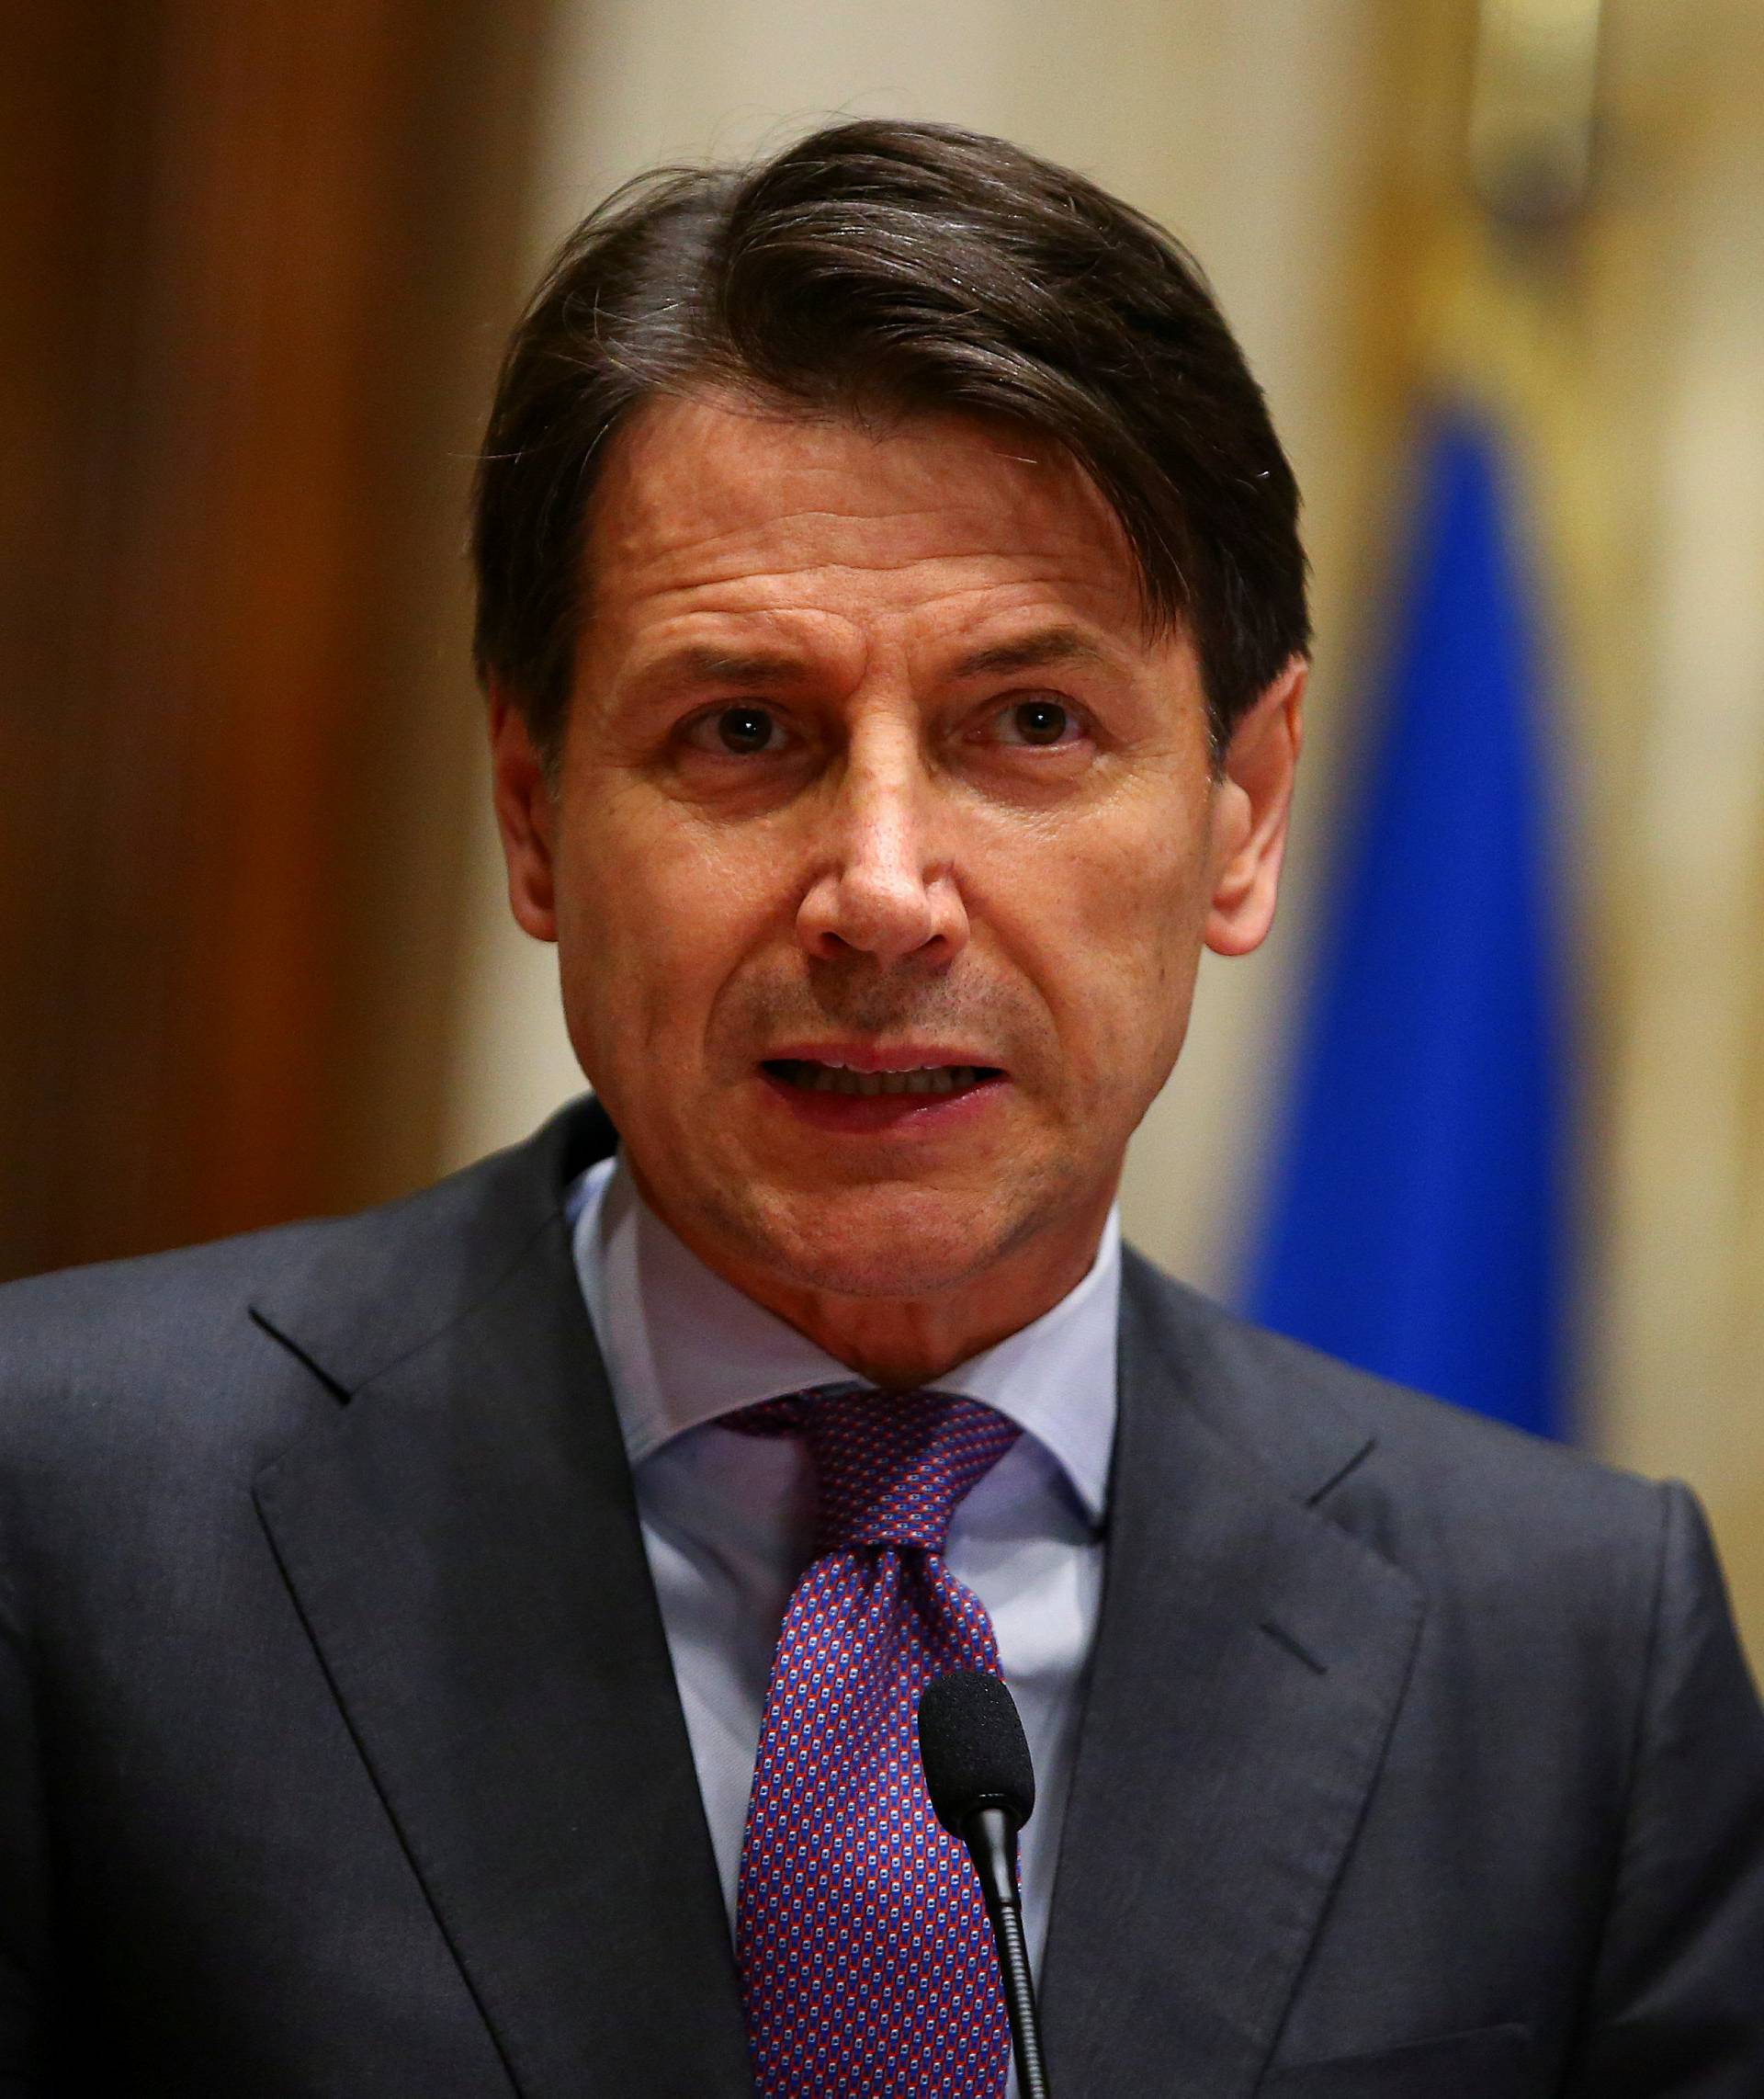 FILE PHOTO: Italy's newly appointed Prime Minister Giuseppe Conte speaks at the media at the end of a round of consultations with political parties at the Lower House in Rome